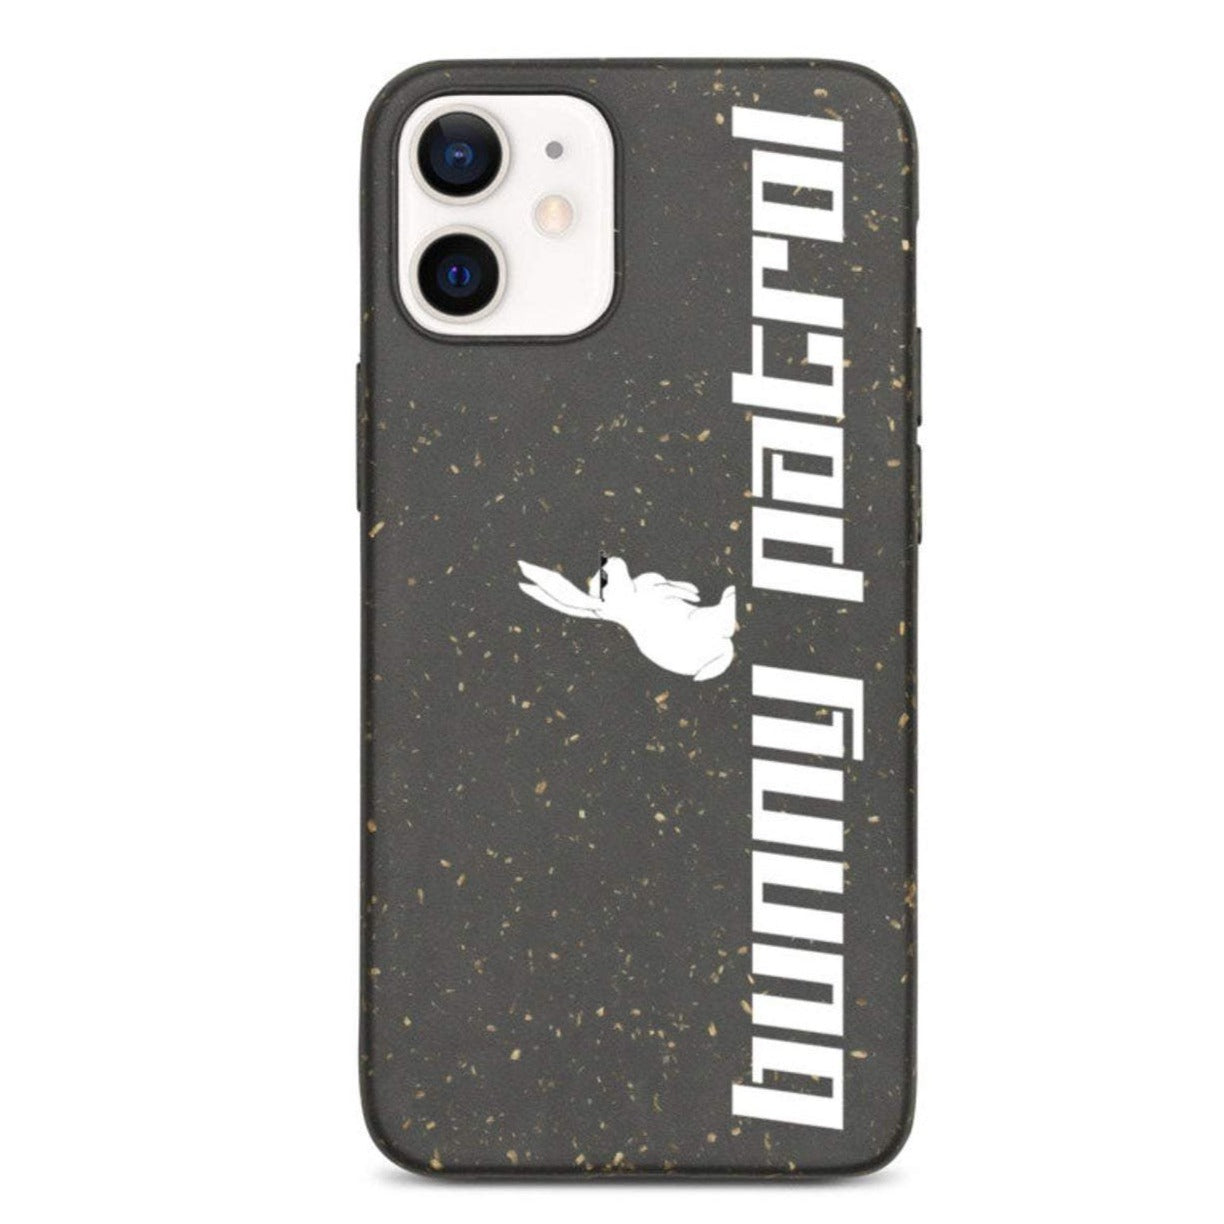 Bunny Patrol - Biodegradable Phone Cases